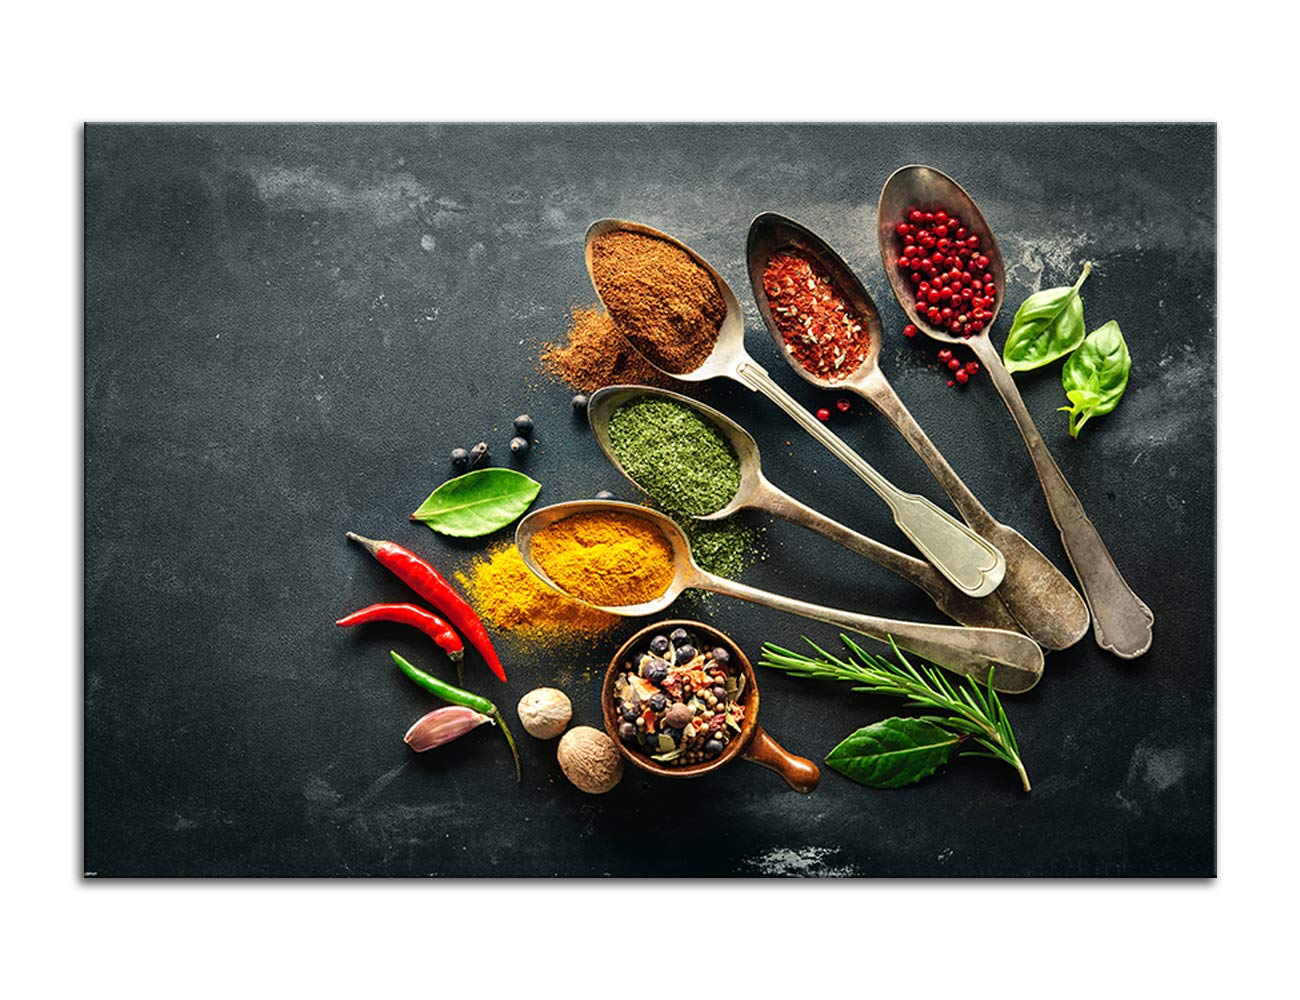 Amemny Kitchen Pictures Canvas Wall Art Herbs And Spices On A Wooden Table Background Giclee Print Gallery Wrap Modern Home Decor Ready To Hang